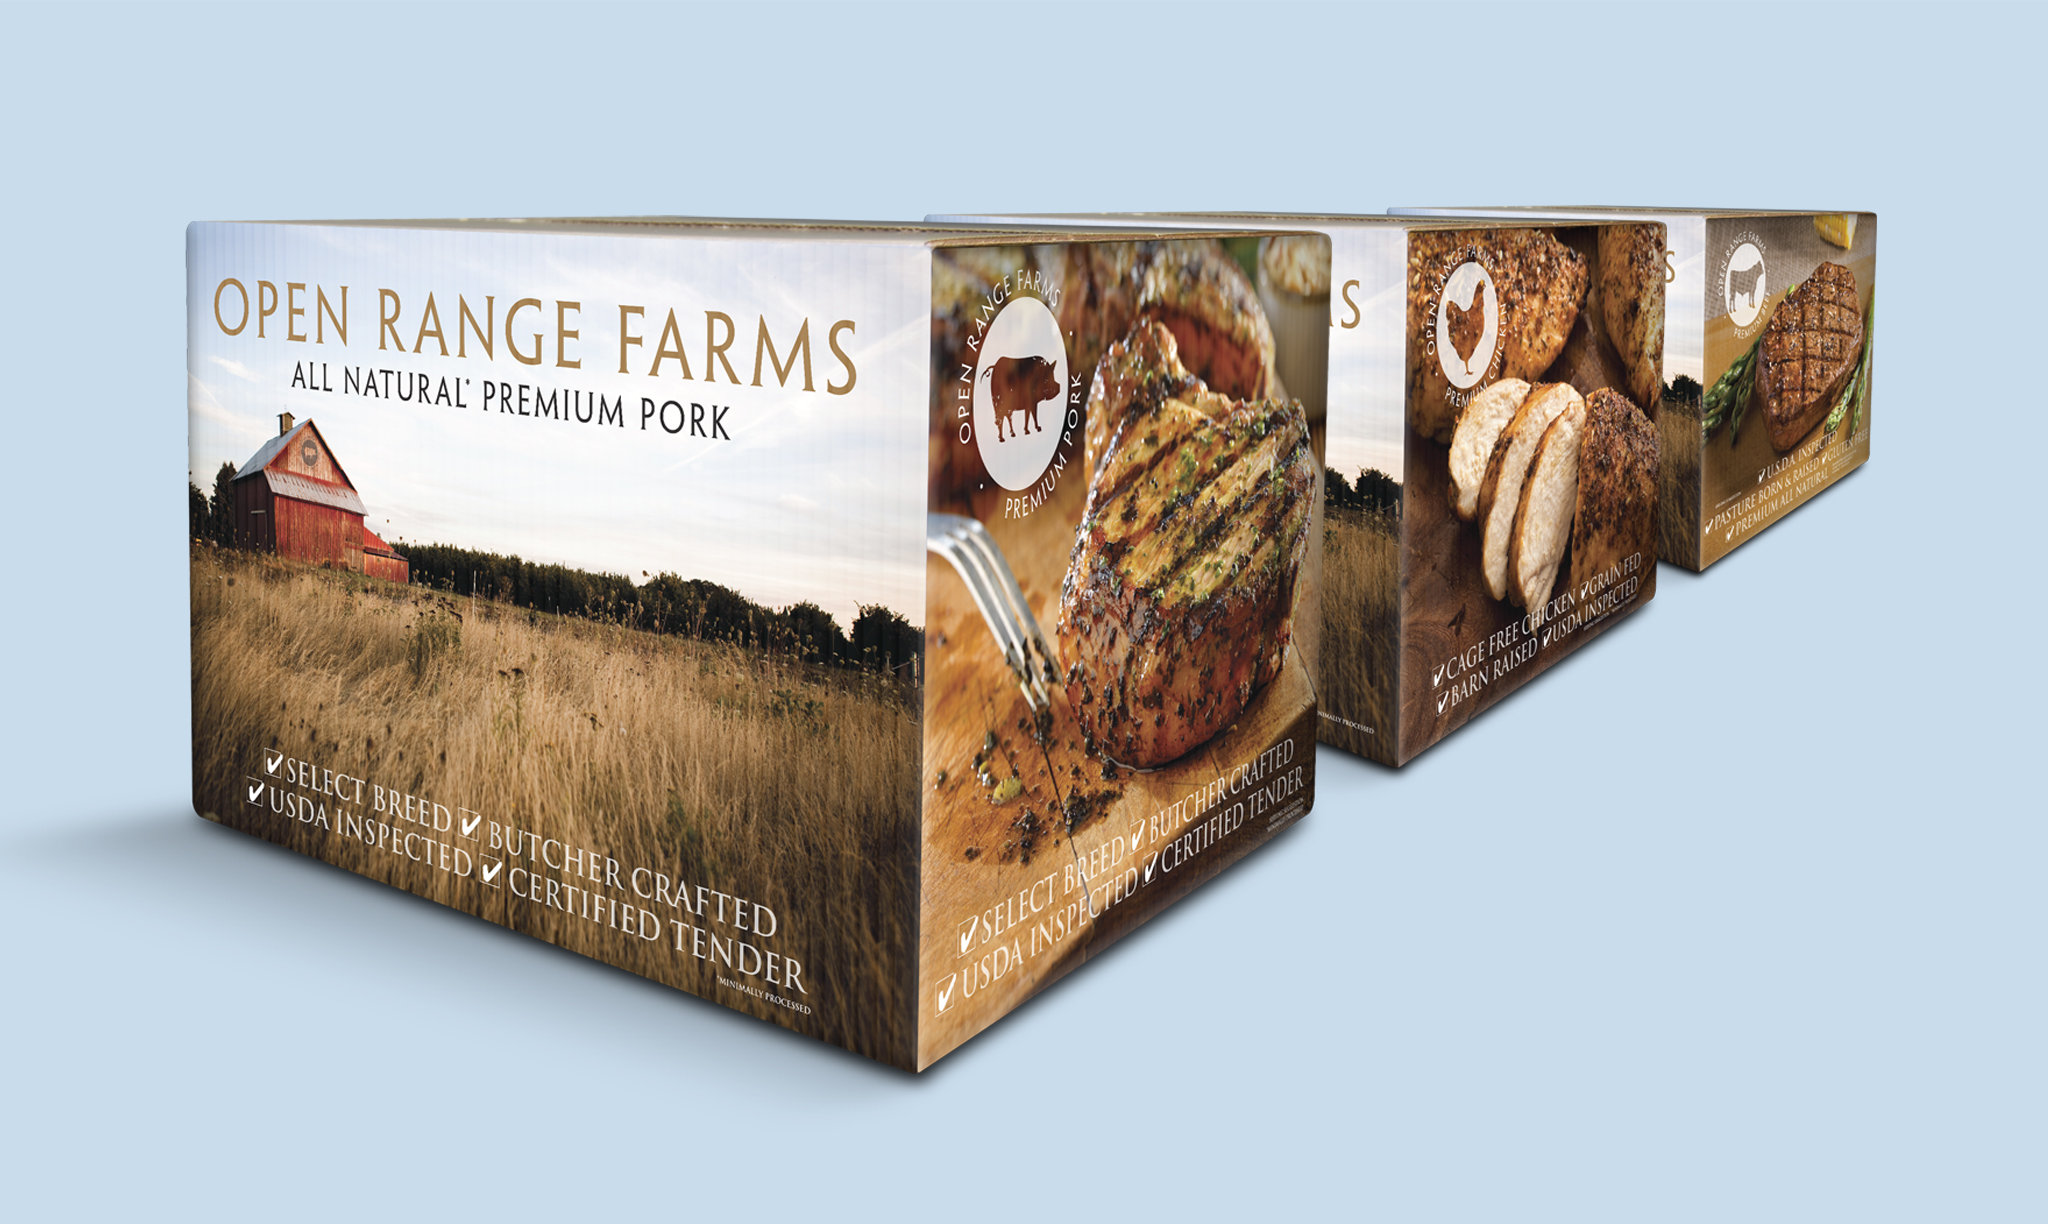 Stampede Meat Open Range Farms Pork Packaging